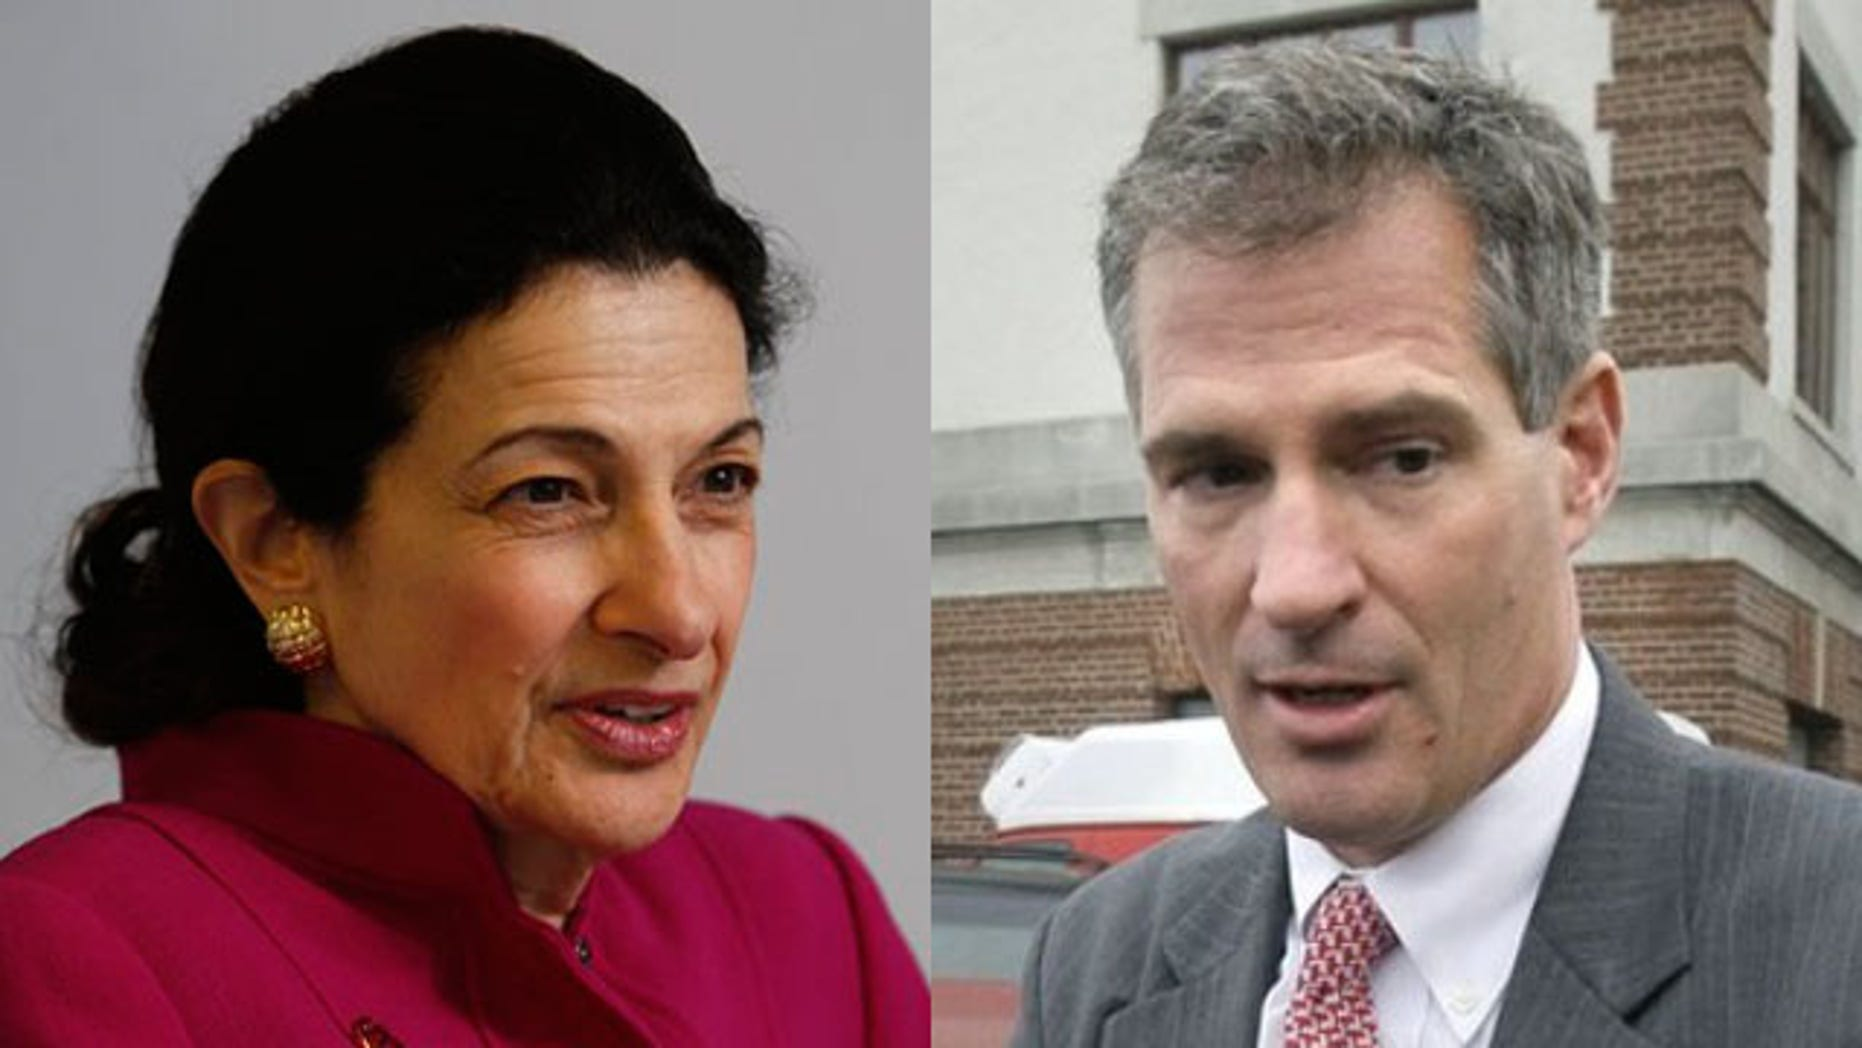 Shown here are Sen. Olympia Snowe, R-Maine, and Sen. Scott Brown, R-Mass. (AP Photos)